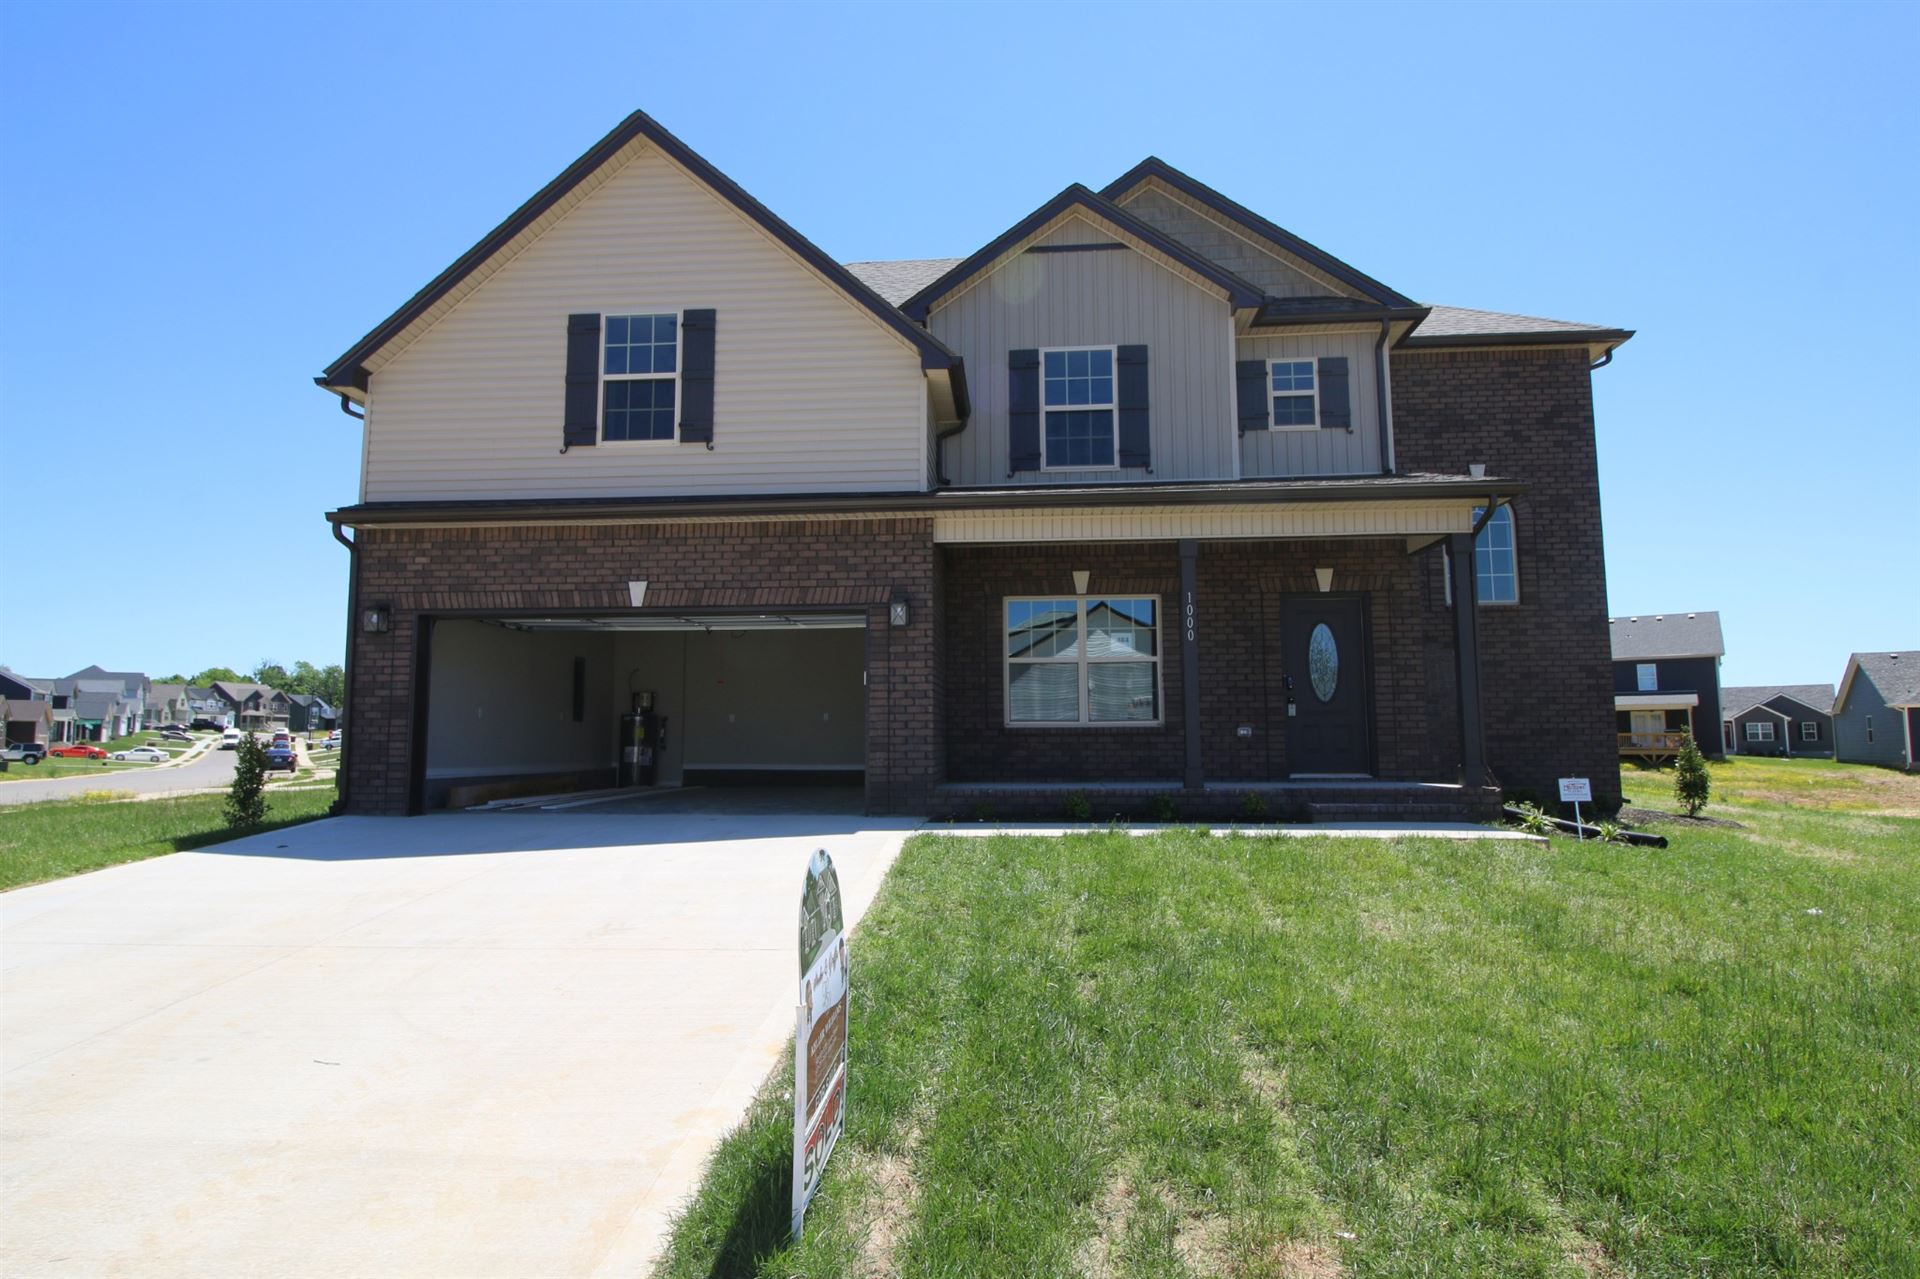 484 Autumn Creek, Clarksville, TN 37042 - MLS#: 2219890